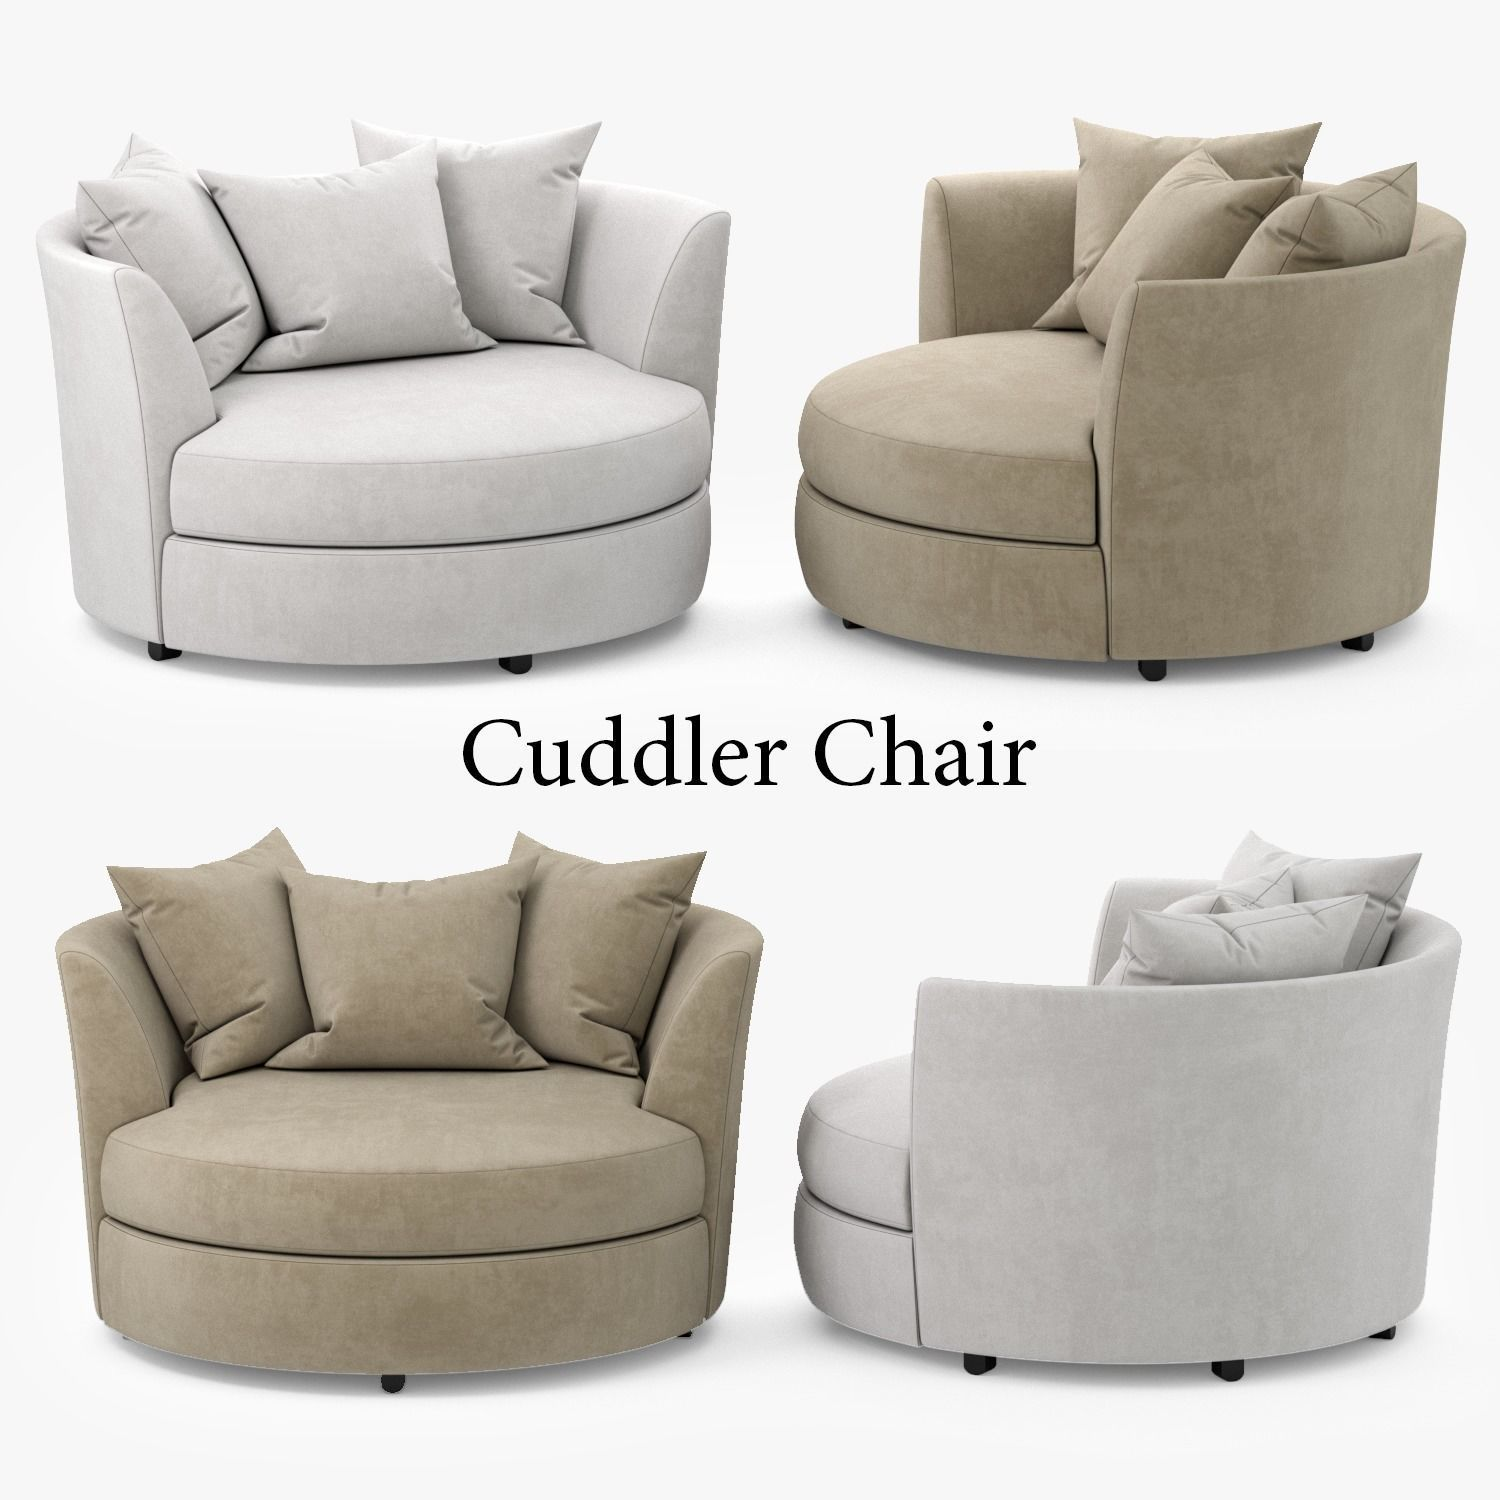 Cuddler Chair 3d Model Max Obj Mtl Fbx 1 ...